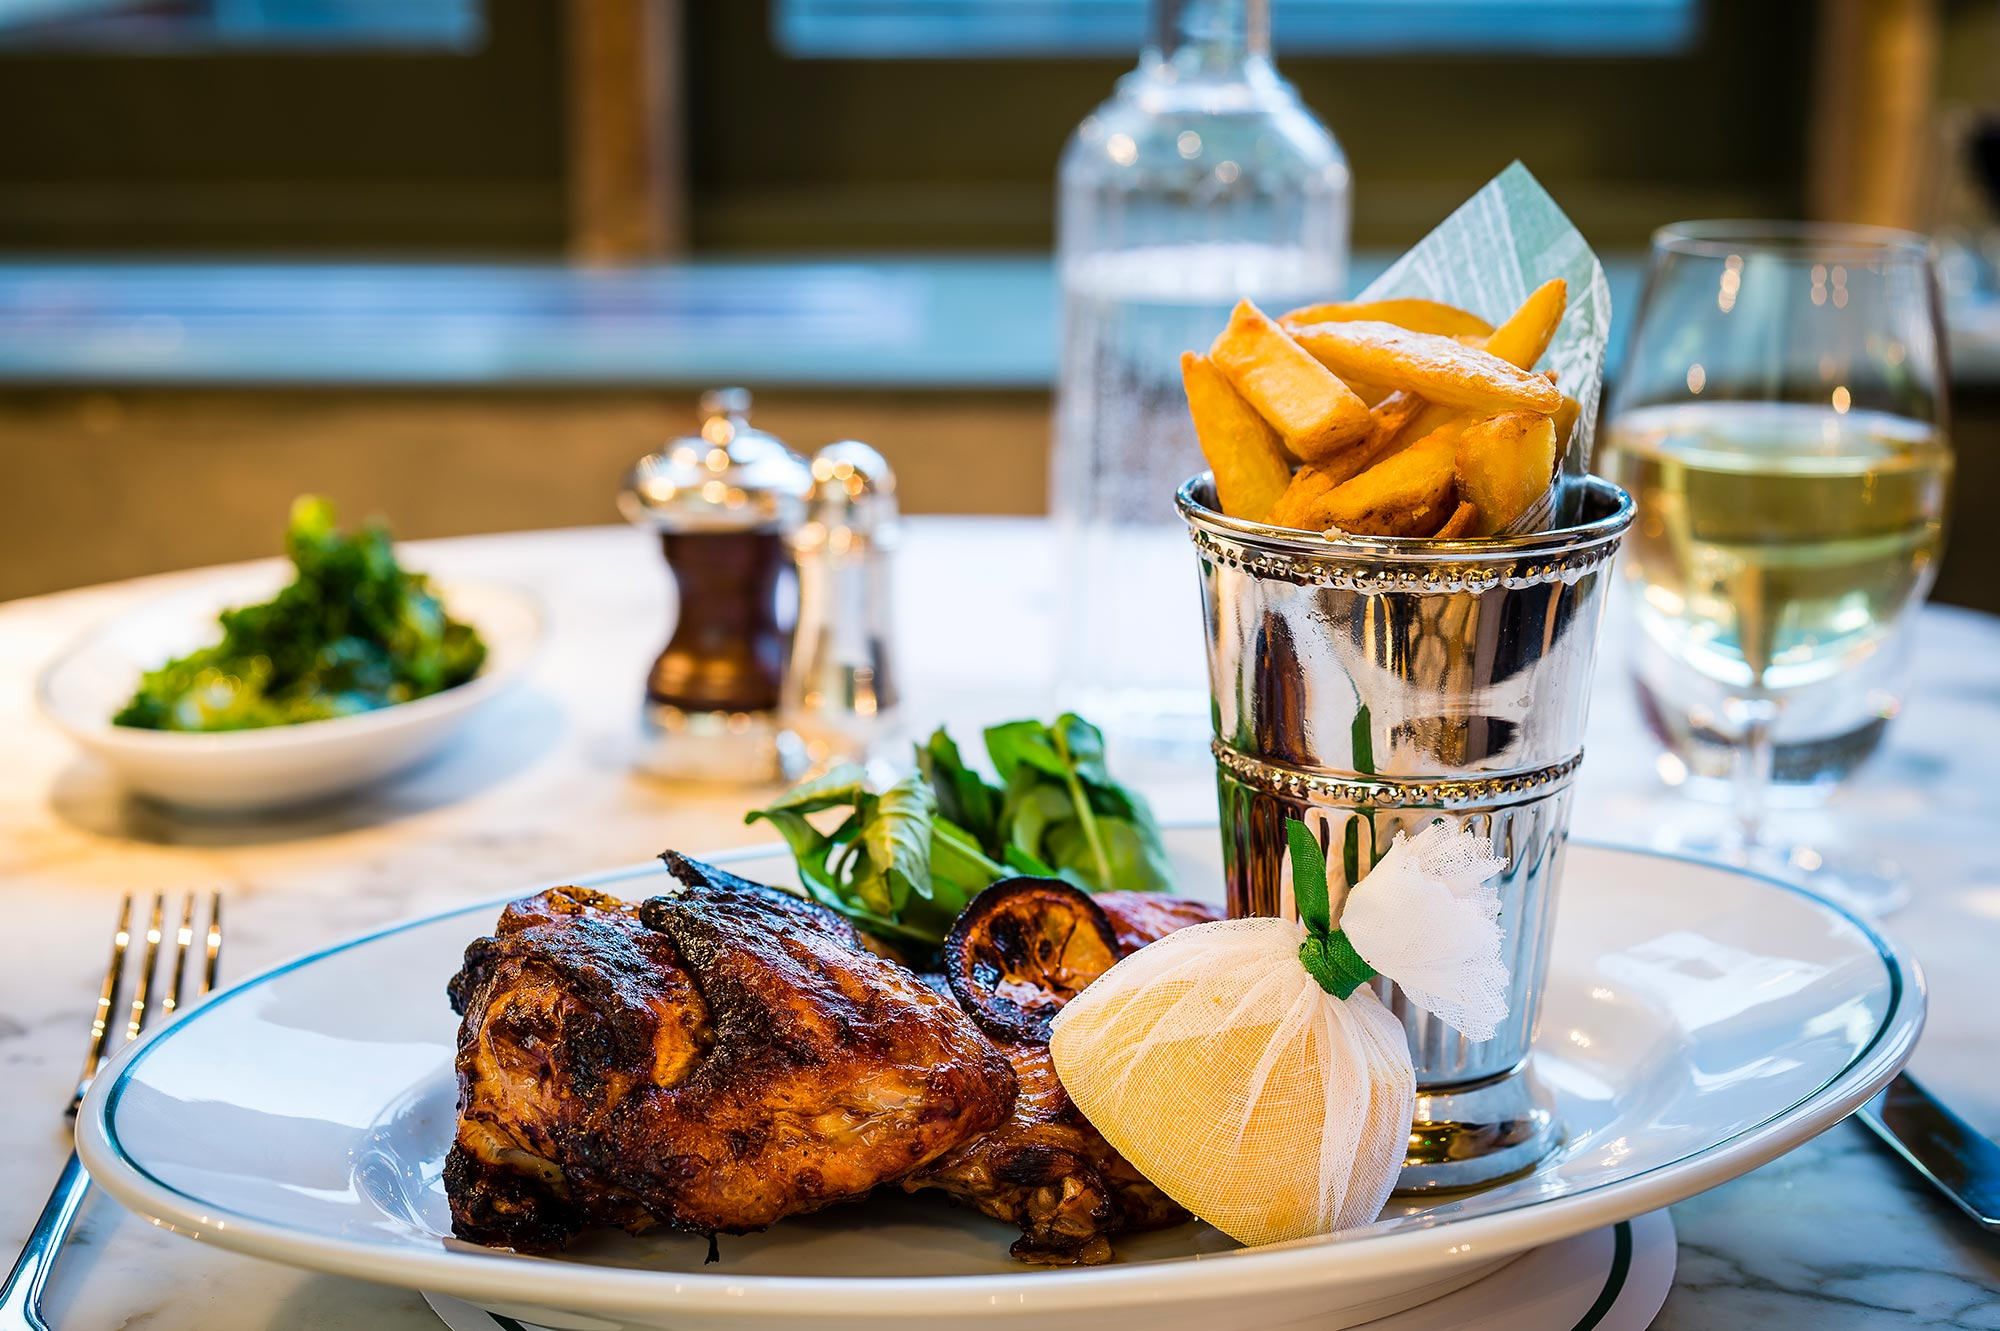 Chargrilled Banham half chicken at The Ivy Chelsea Garden - The Ivy Chelsea Garden